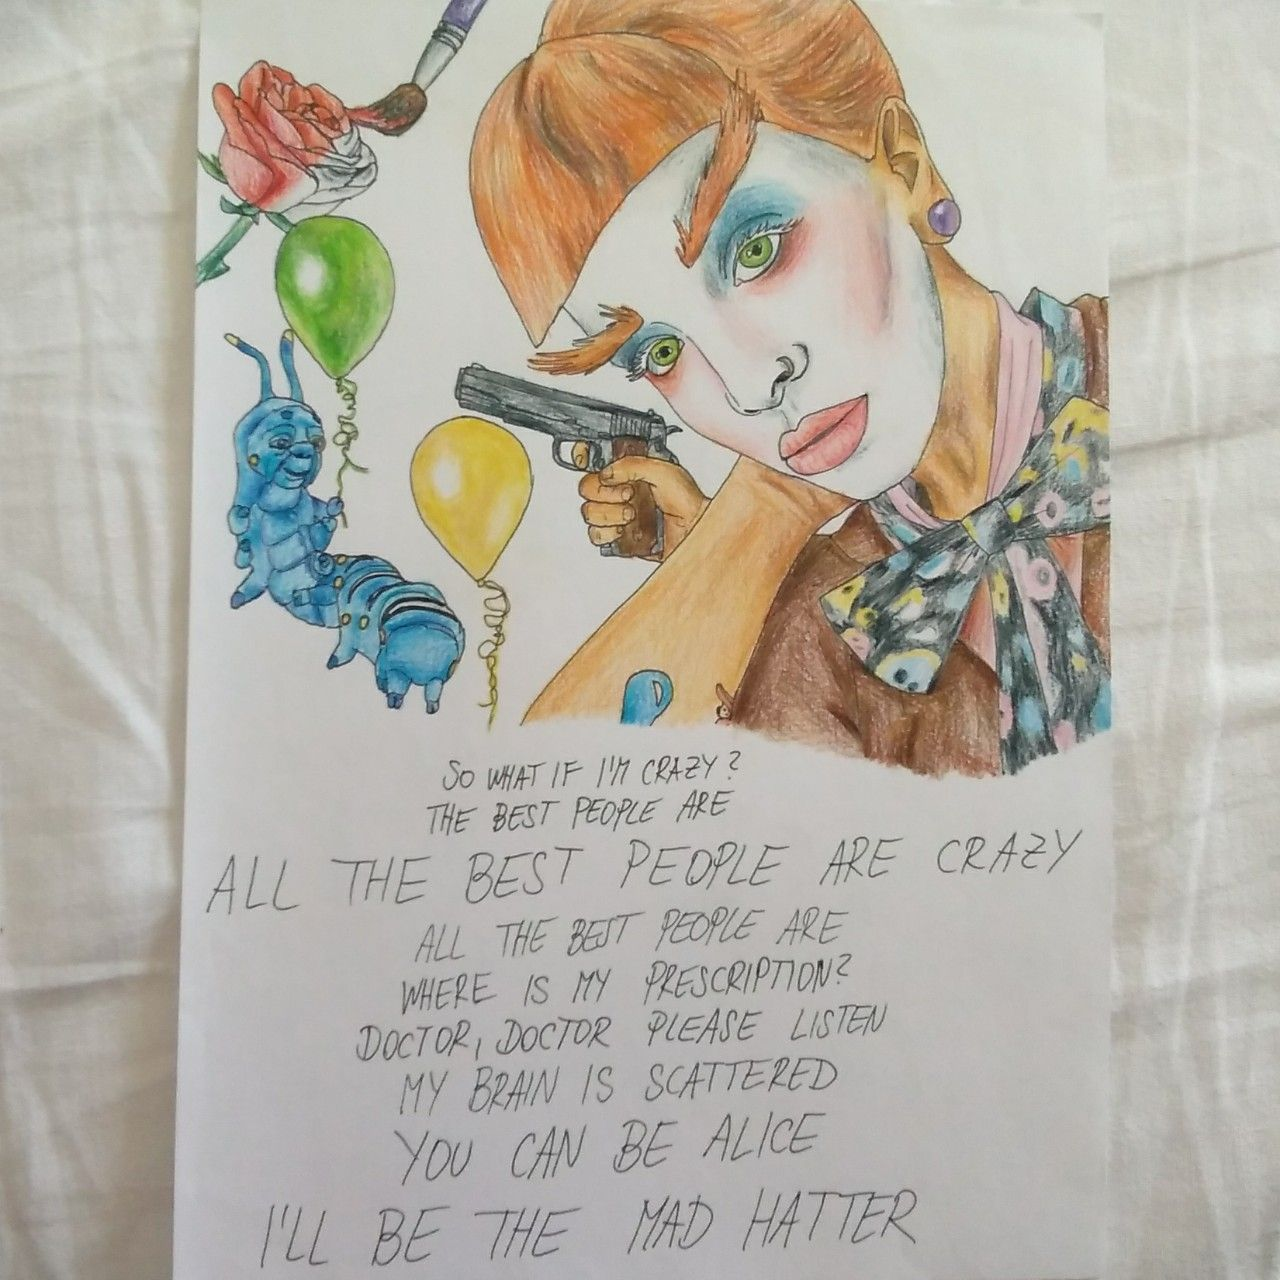 Melanie Martinez Mad Hatter Drawing Cry Baby K 12 Depop Mad Hatter Drawing Melanie Martinez Mad Hatter Mad Hatter